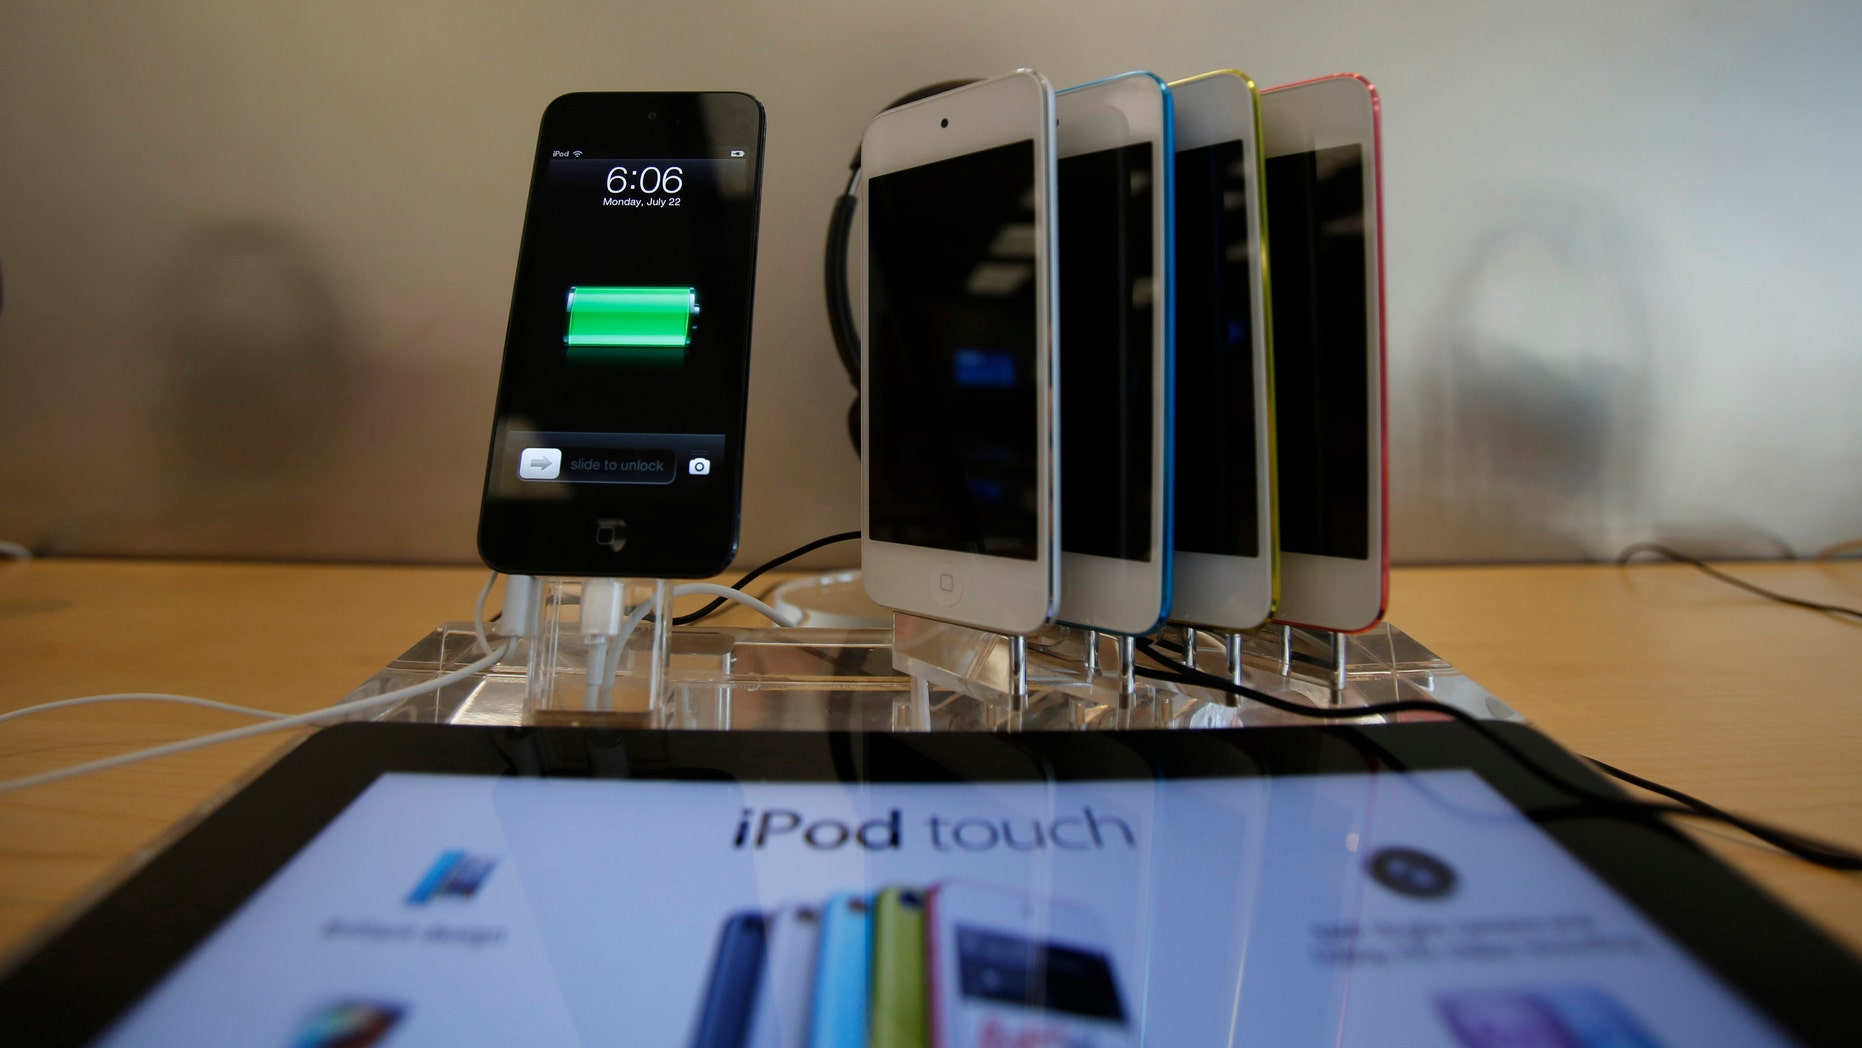 File photo - iPod Touches are pictured on display at an Apple Store in Pasadena, California July 22, 2013.